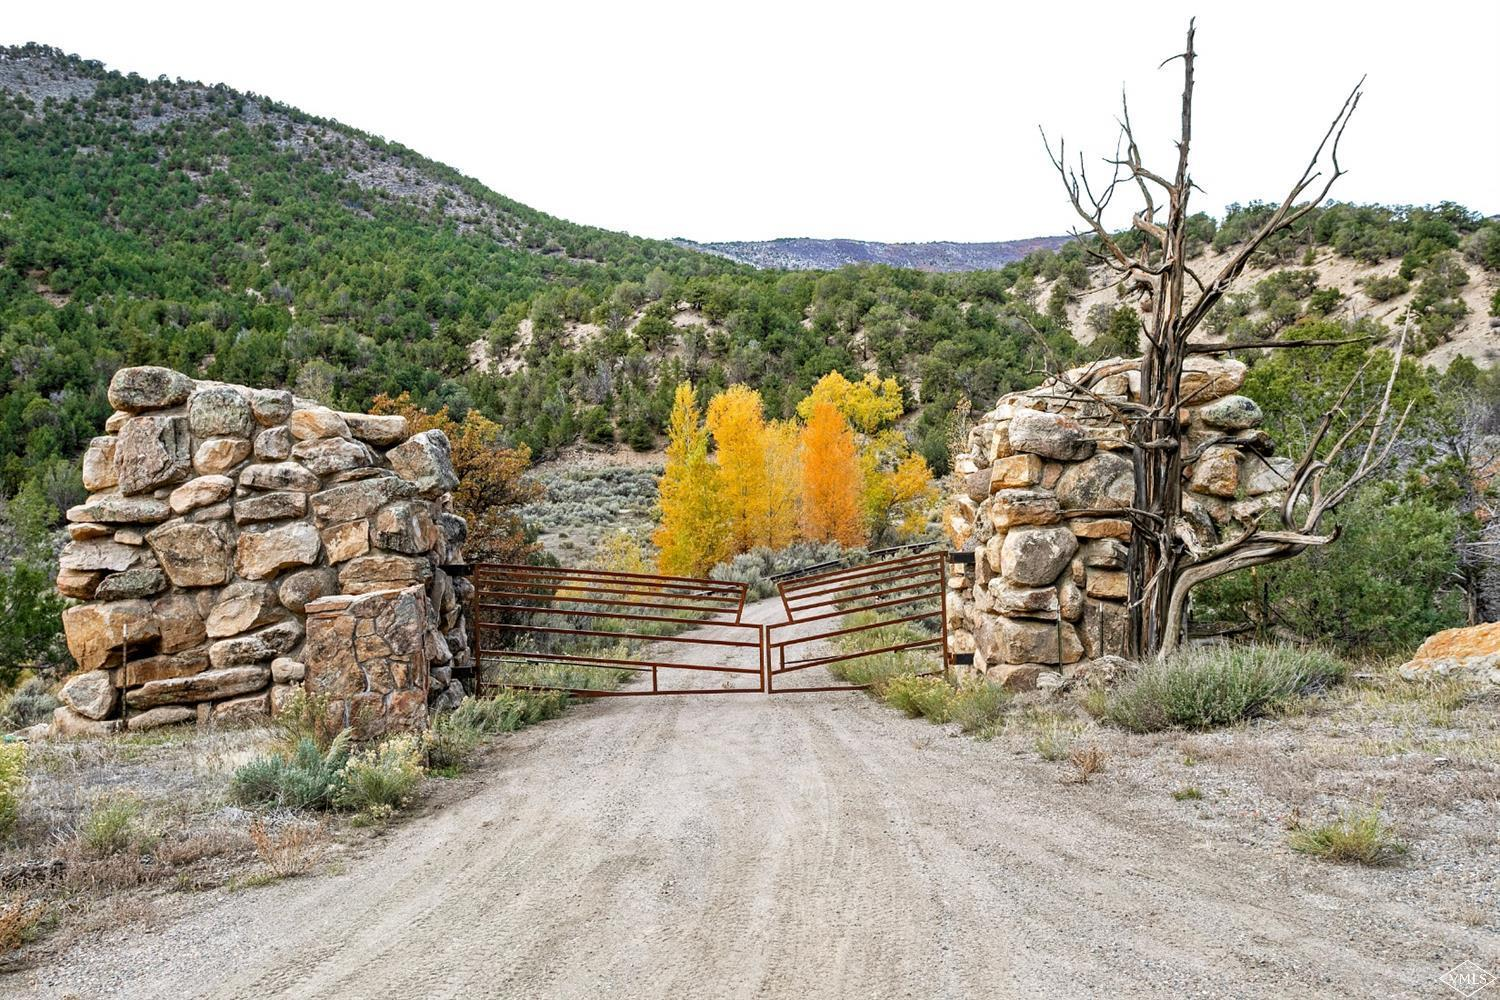 2742 Sweetwater Road, 10, Gypsum, CO 81637 Property Photo - Gypsum, CO real estate listing